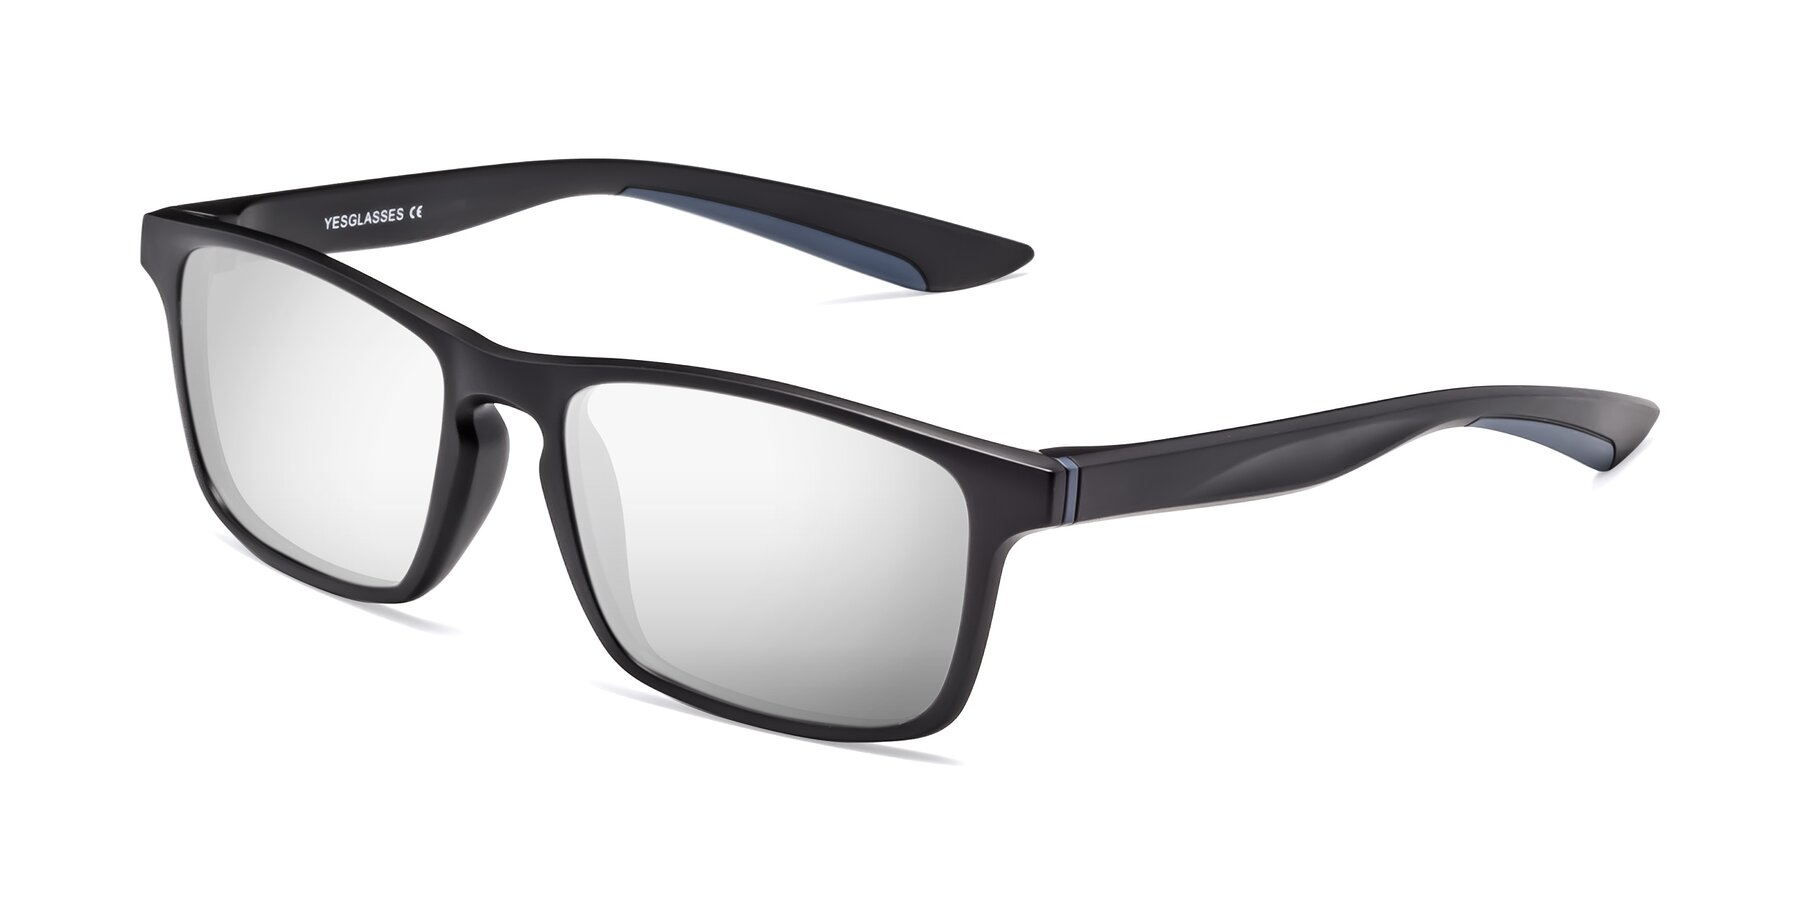 Angle of Passion in Matte Black-Blue with Silver Mirrored Lenses